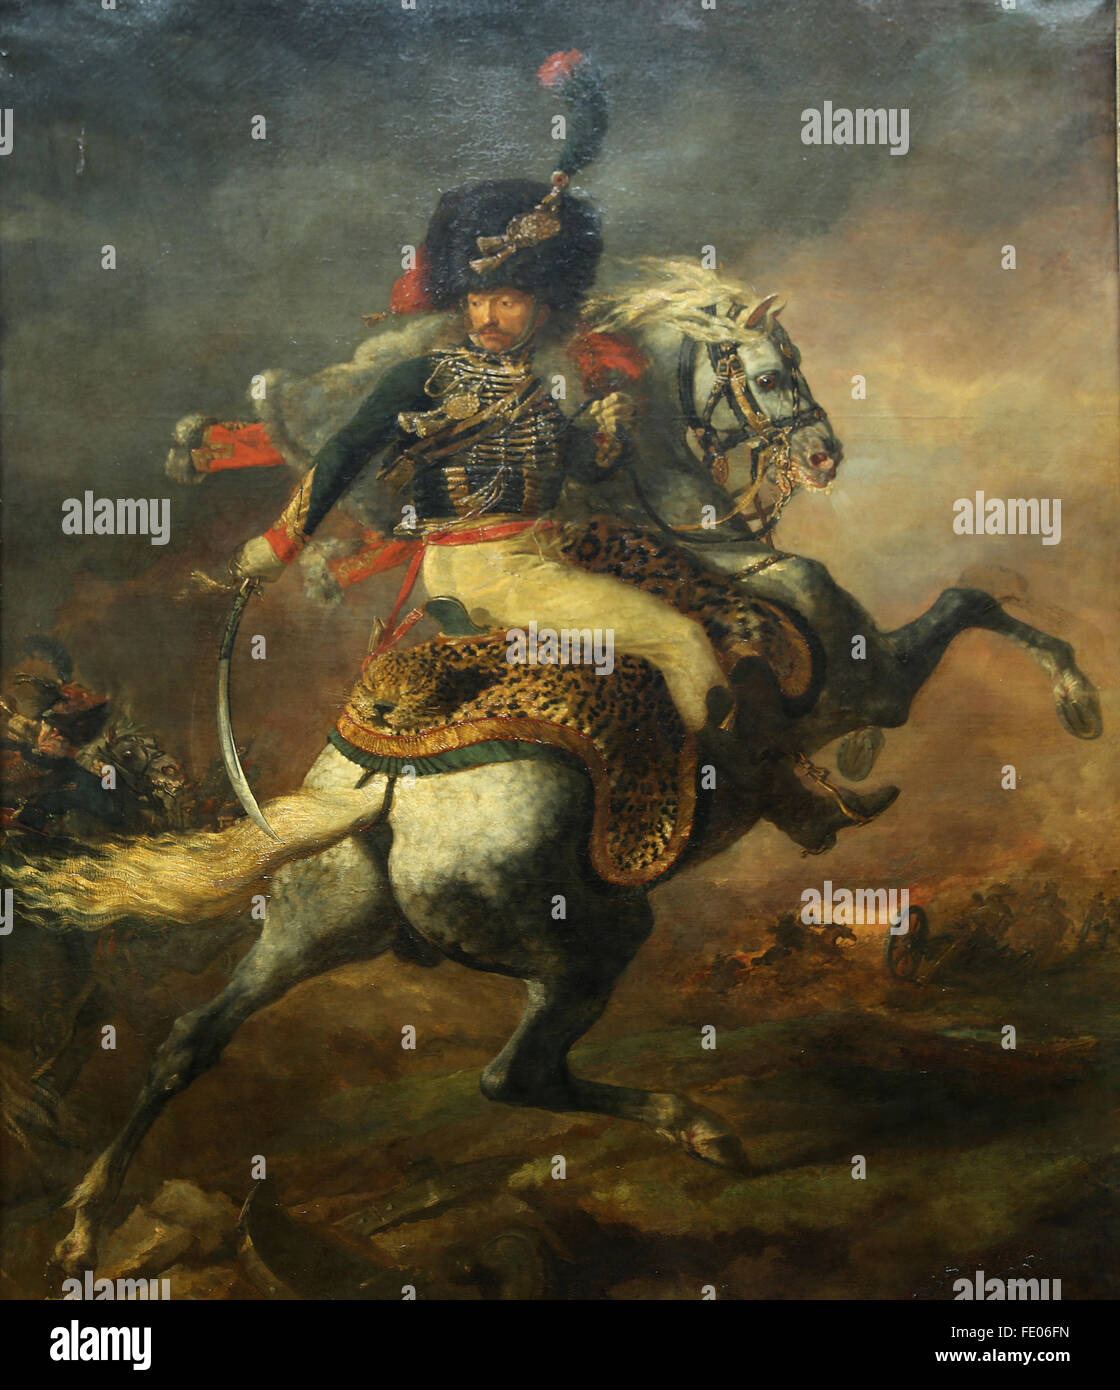 The Charging Chasseur, 1812 by French painter Eugene Delacroix (1798-1863). Oil on canvas. Louvre Museum, Paris, - Stock Image